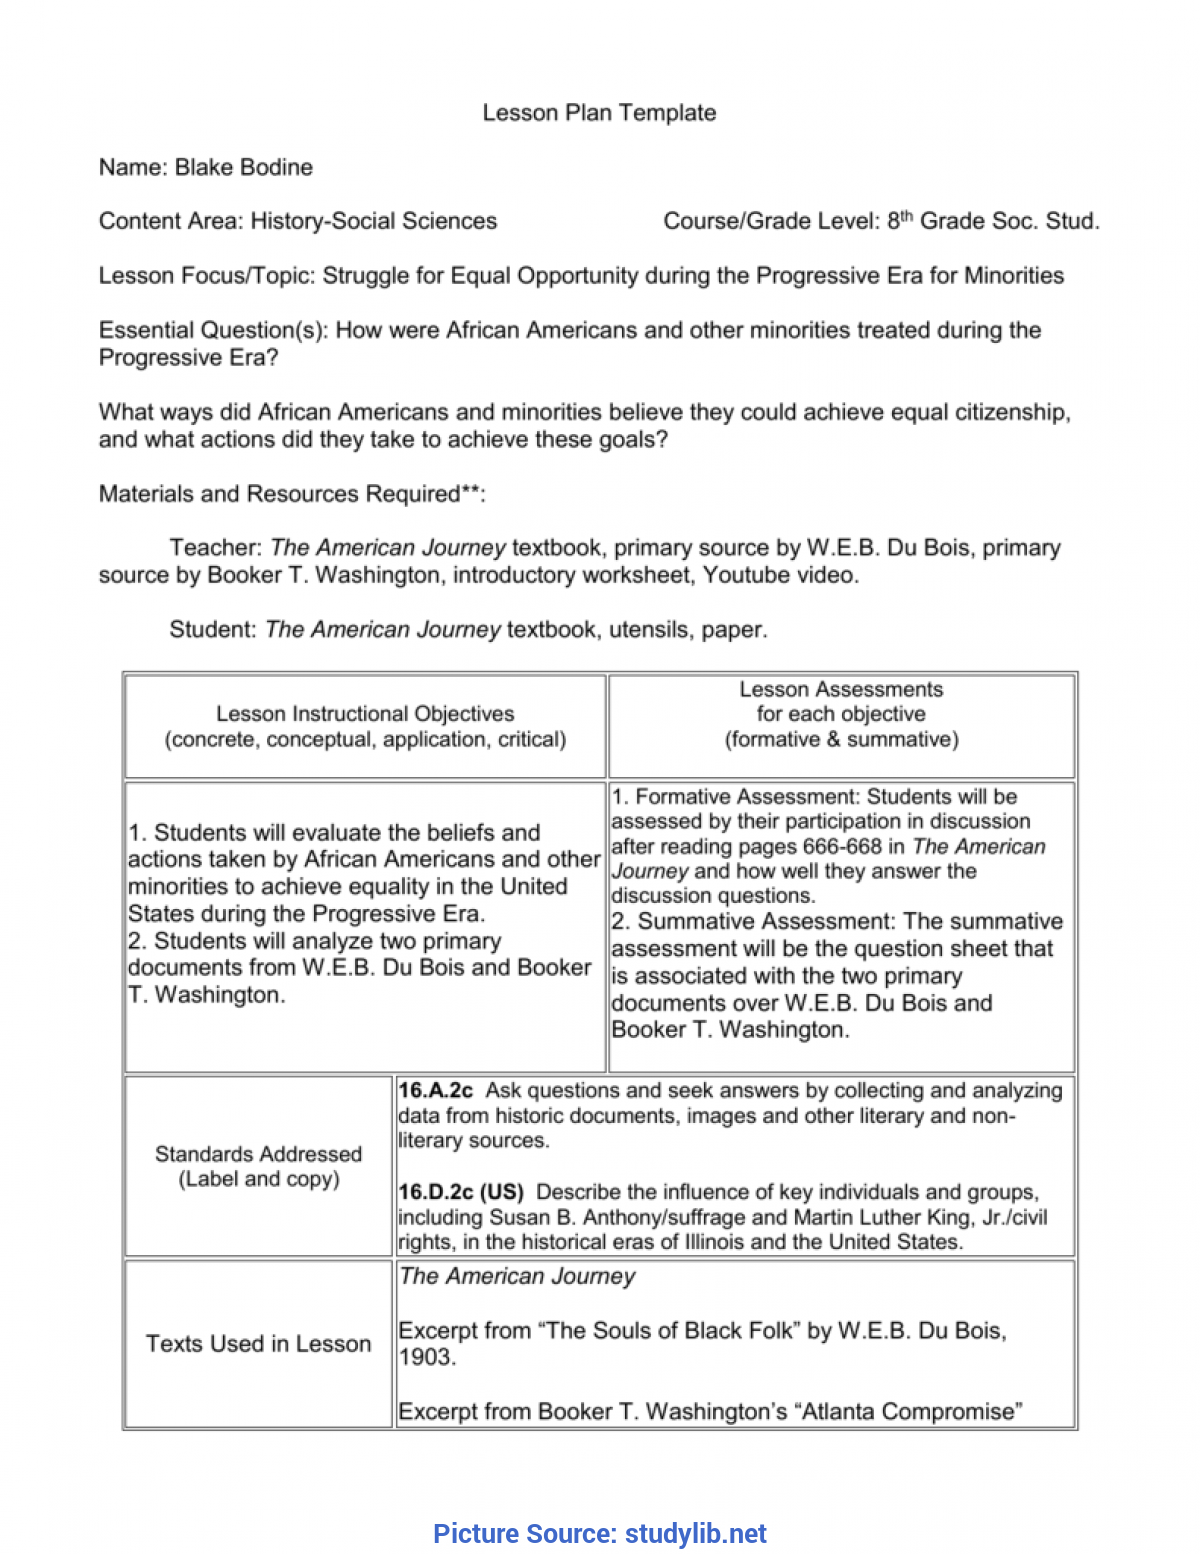 Simple Lesson Plan Template For 8Th Grade Social Studies 008038882_1-F3C63Fe12D01C57Ac4Af1069Cd040Bef